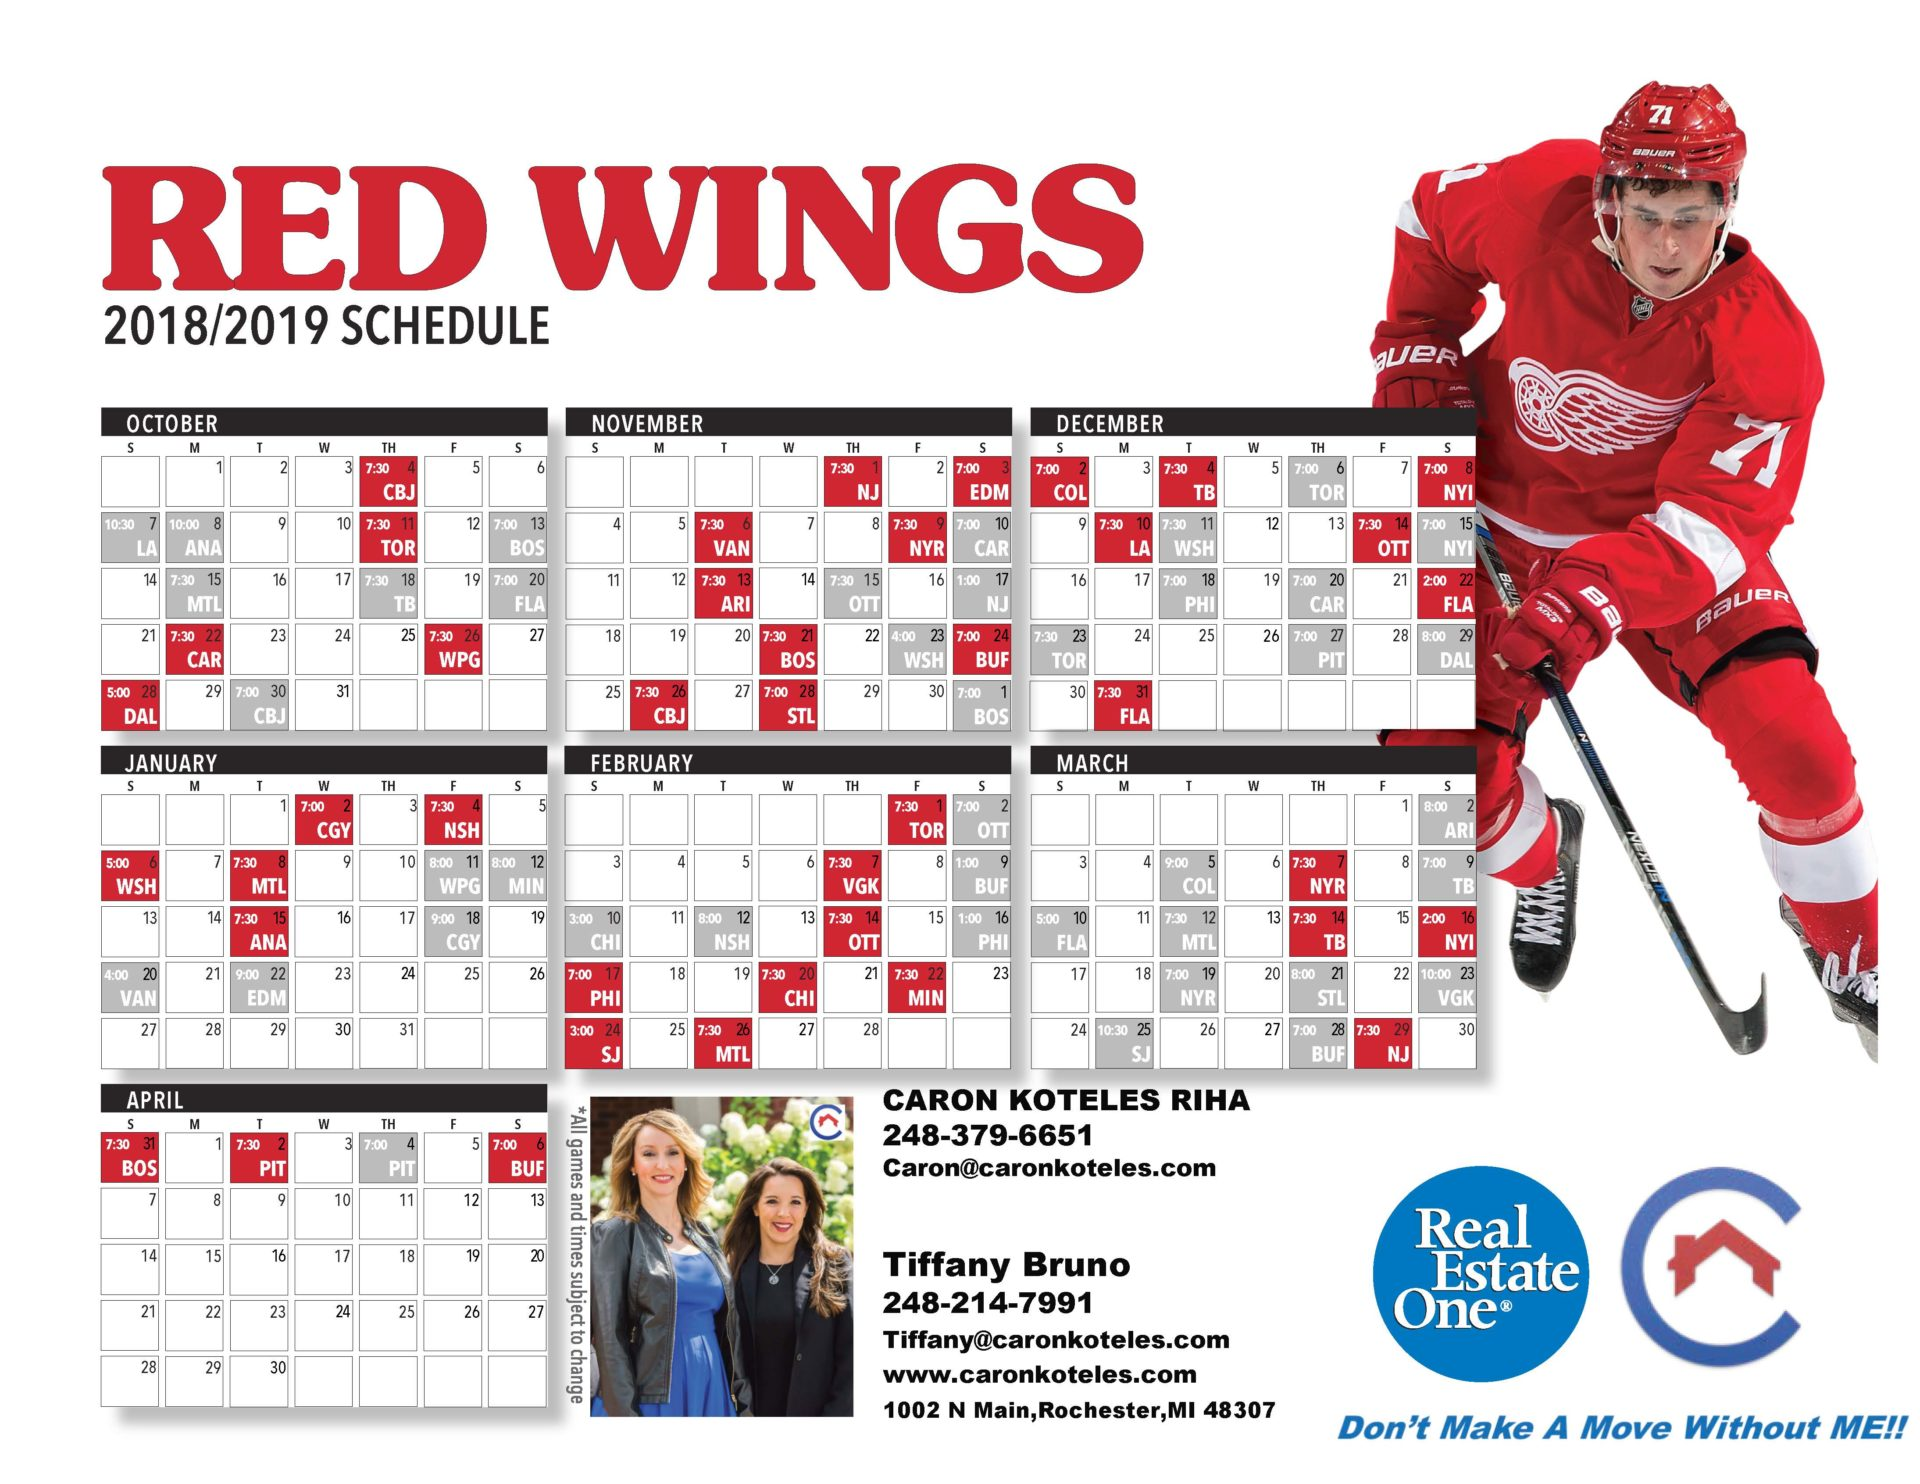 photograph regarding Printable Red Wings Schedule identified as 2018-2019 Detroit Crimson Wings Plan - Caron Koteles Riha